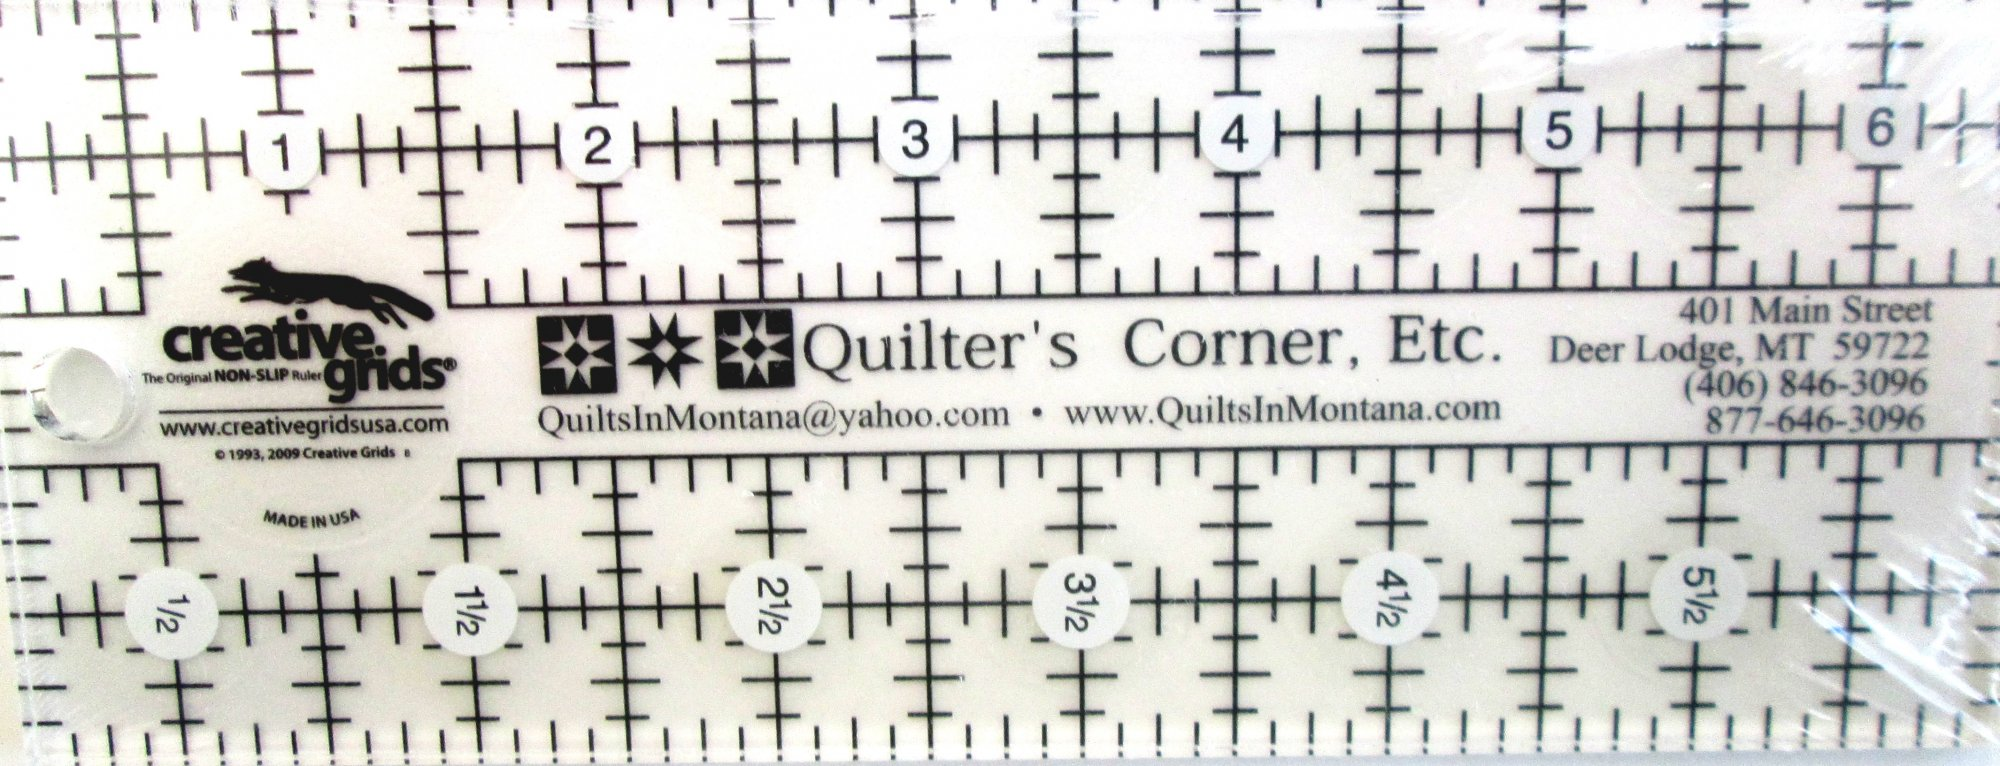 Creative Grids Personalized Quilters Corner 2 1/2 by 6 1/2 Ruler